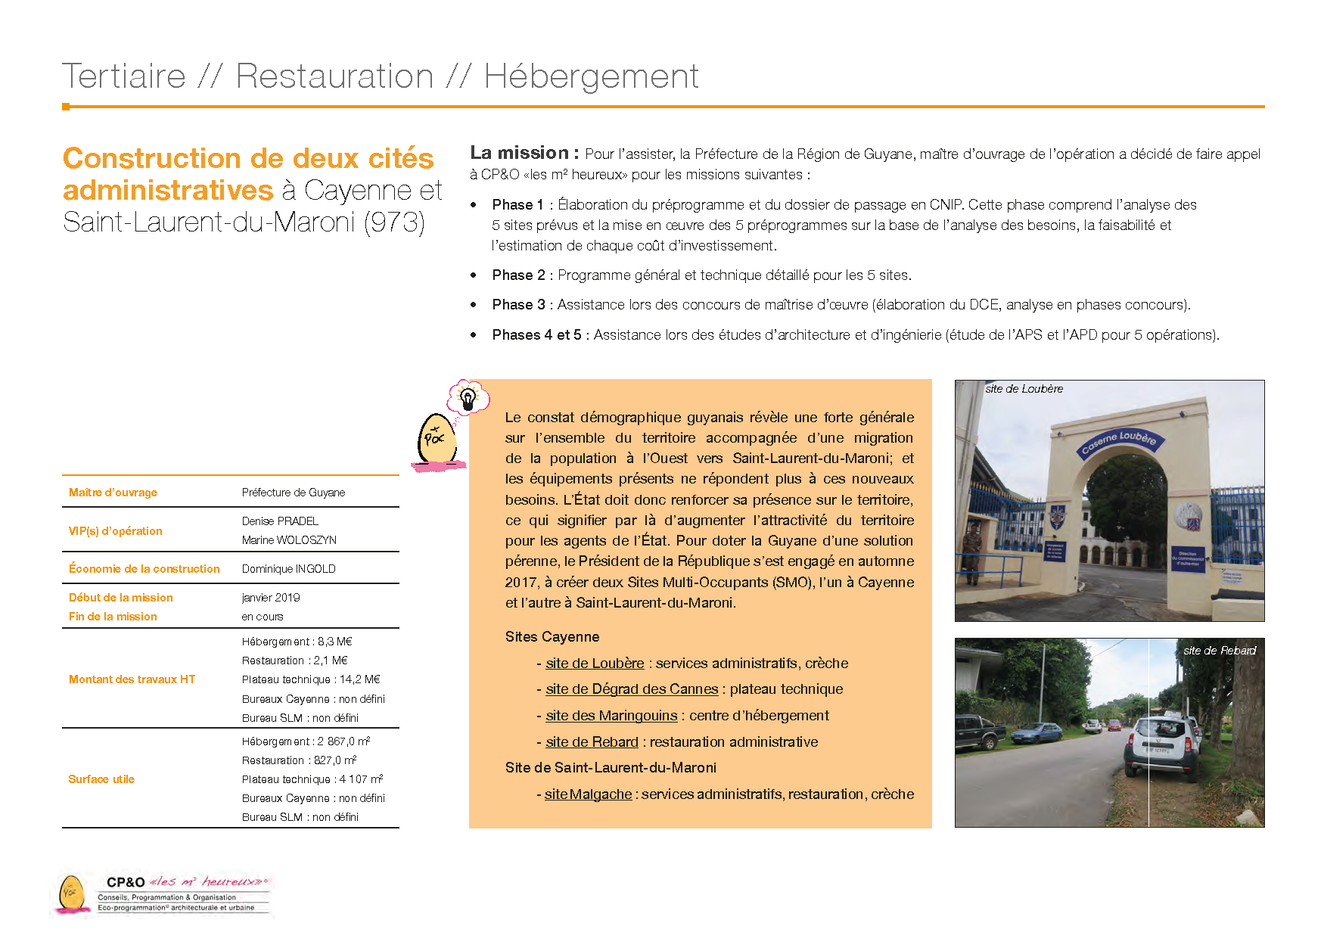 tertiaire_Page_29.png